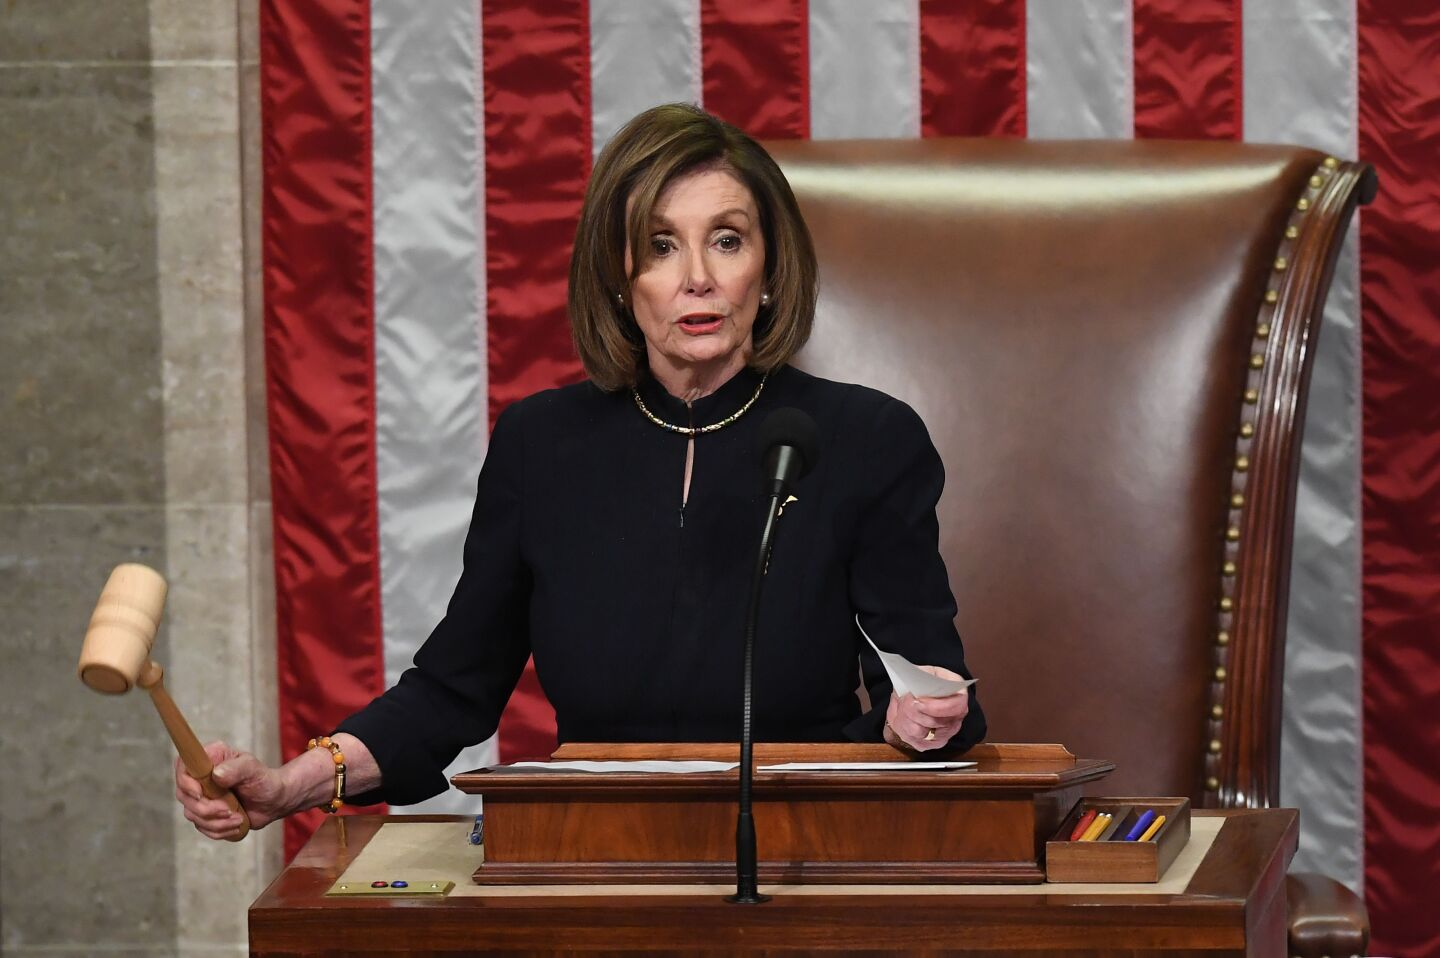 US Speaker of the House Nancy Pelosi presides over Resolution 755, Articles of Impeachment Against President Donald J. Trump as the House votes at the US Capitol in Washington, DC, on December 18, 2019. (Photo by SAUL LOEB / AFP) (Photo by SAUL LOEB/AFP via Getty Images) ** OUTS - ELSENT, FPG, CM - OUTS * NM, PH, VA if sourced by CT, LA or MoD **